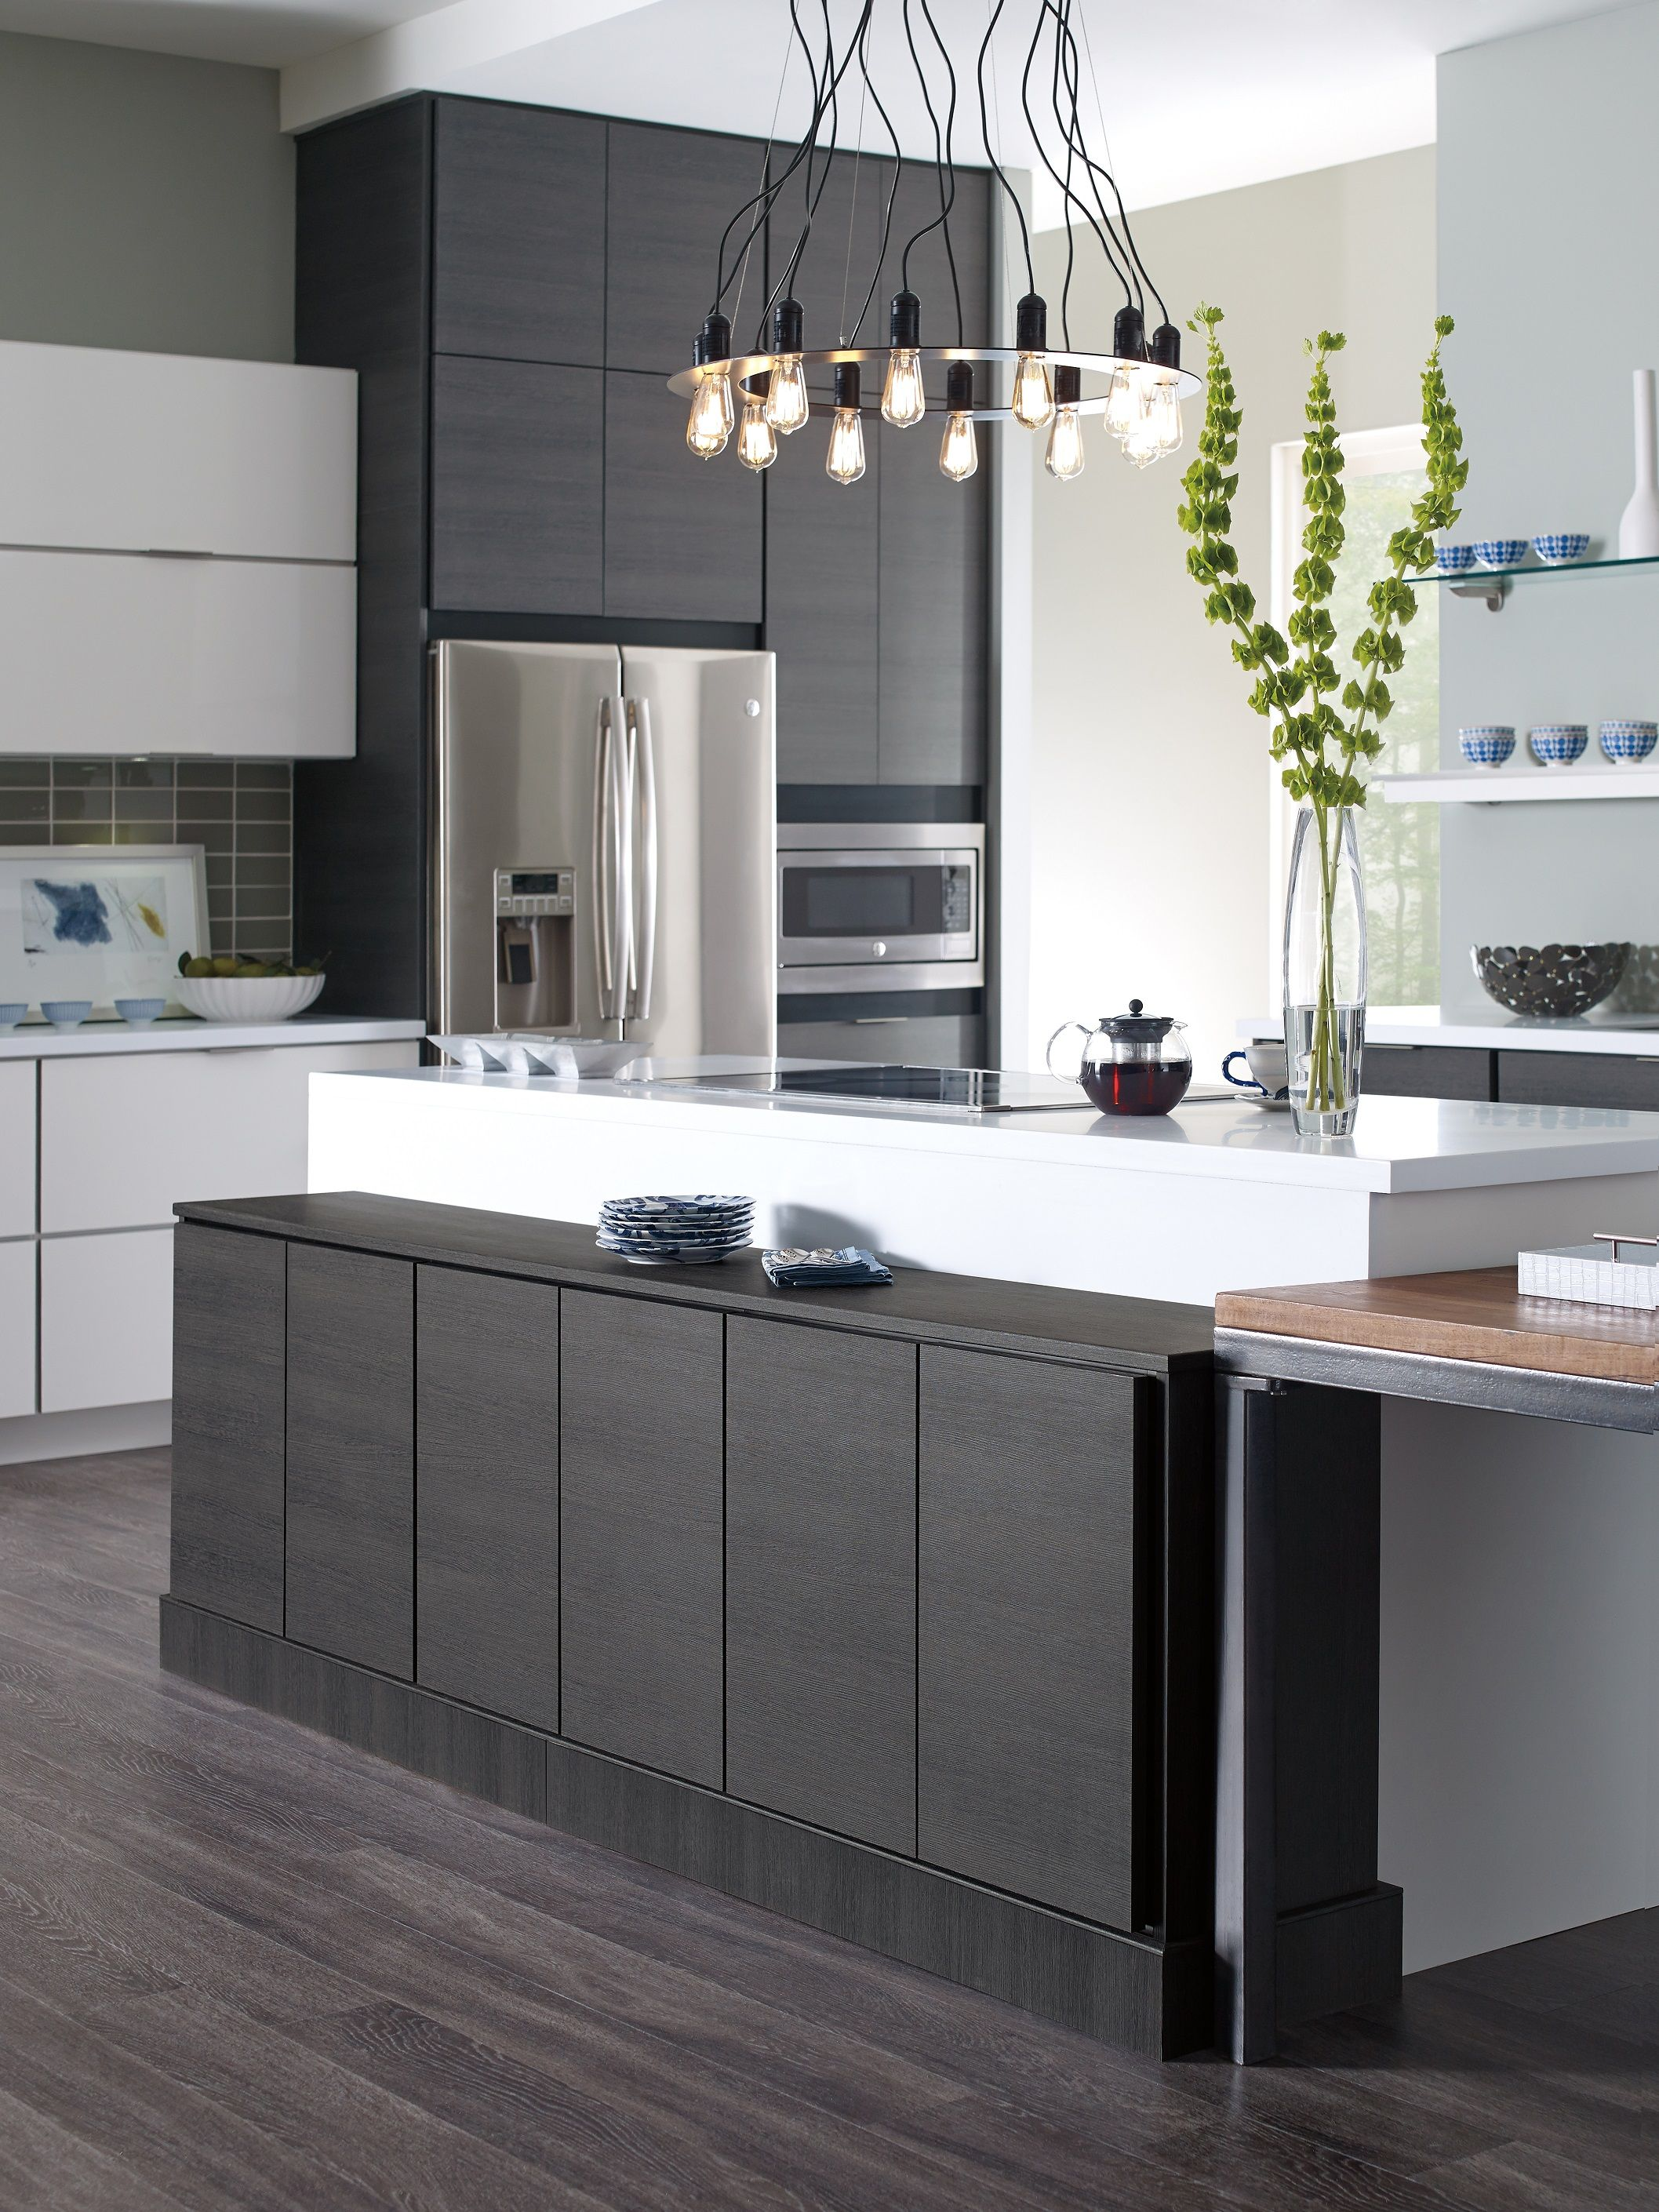 Doors and drawers adobe contemporary style flat panel cabinet door - The Sleek Laminate Cabinets In This Contemporary Kitchen Feature Slab Doors Dramatically Contrasting Finishes And Decidedly Modern Accents